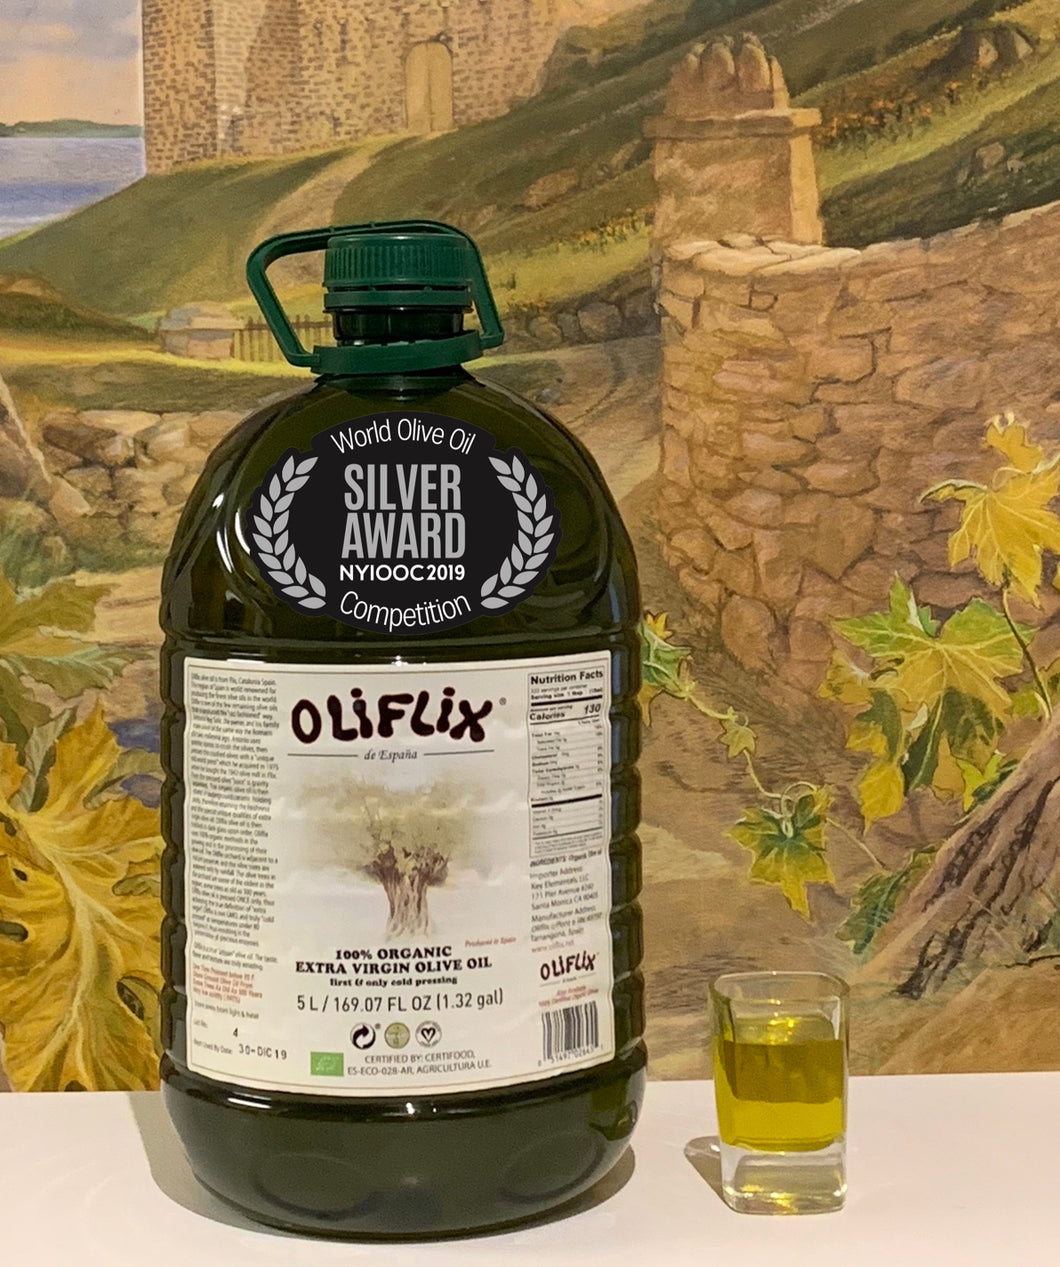 Oliflix Extra Virgin Olive Oil - 5 liter